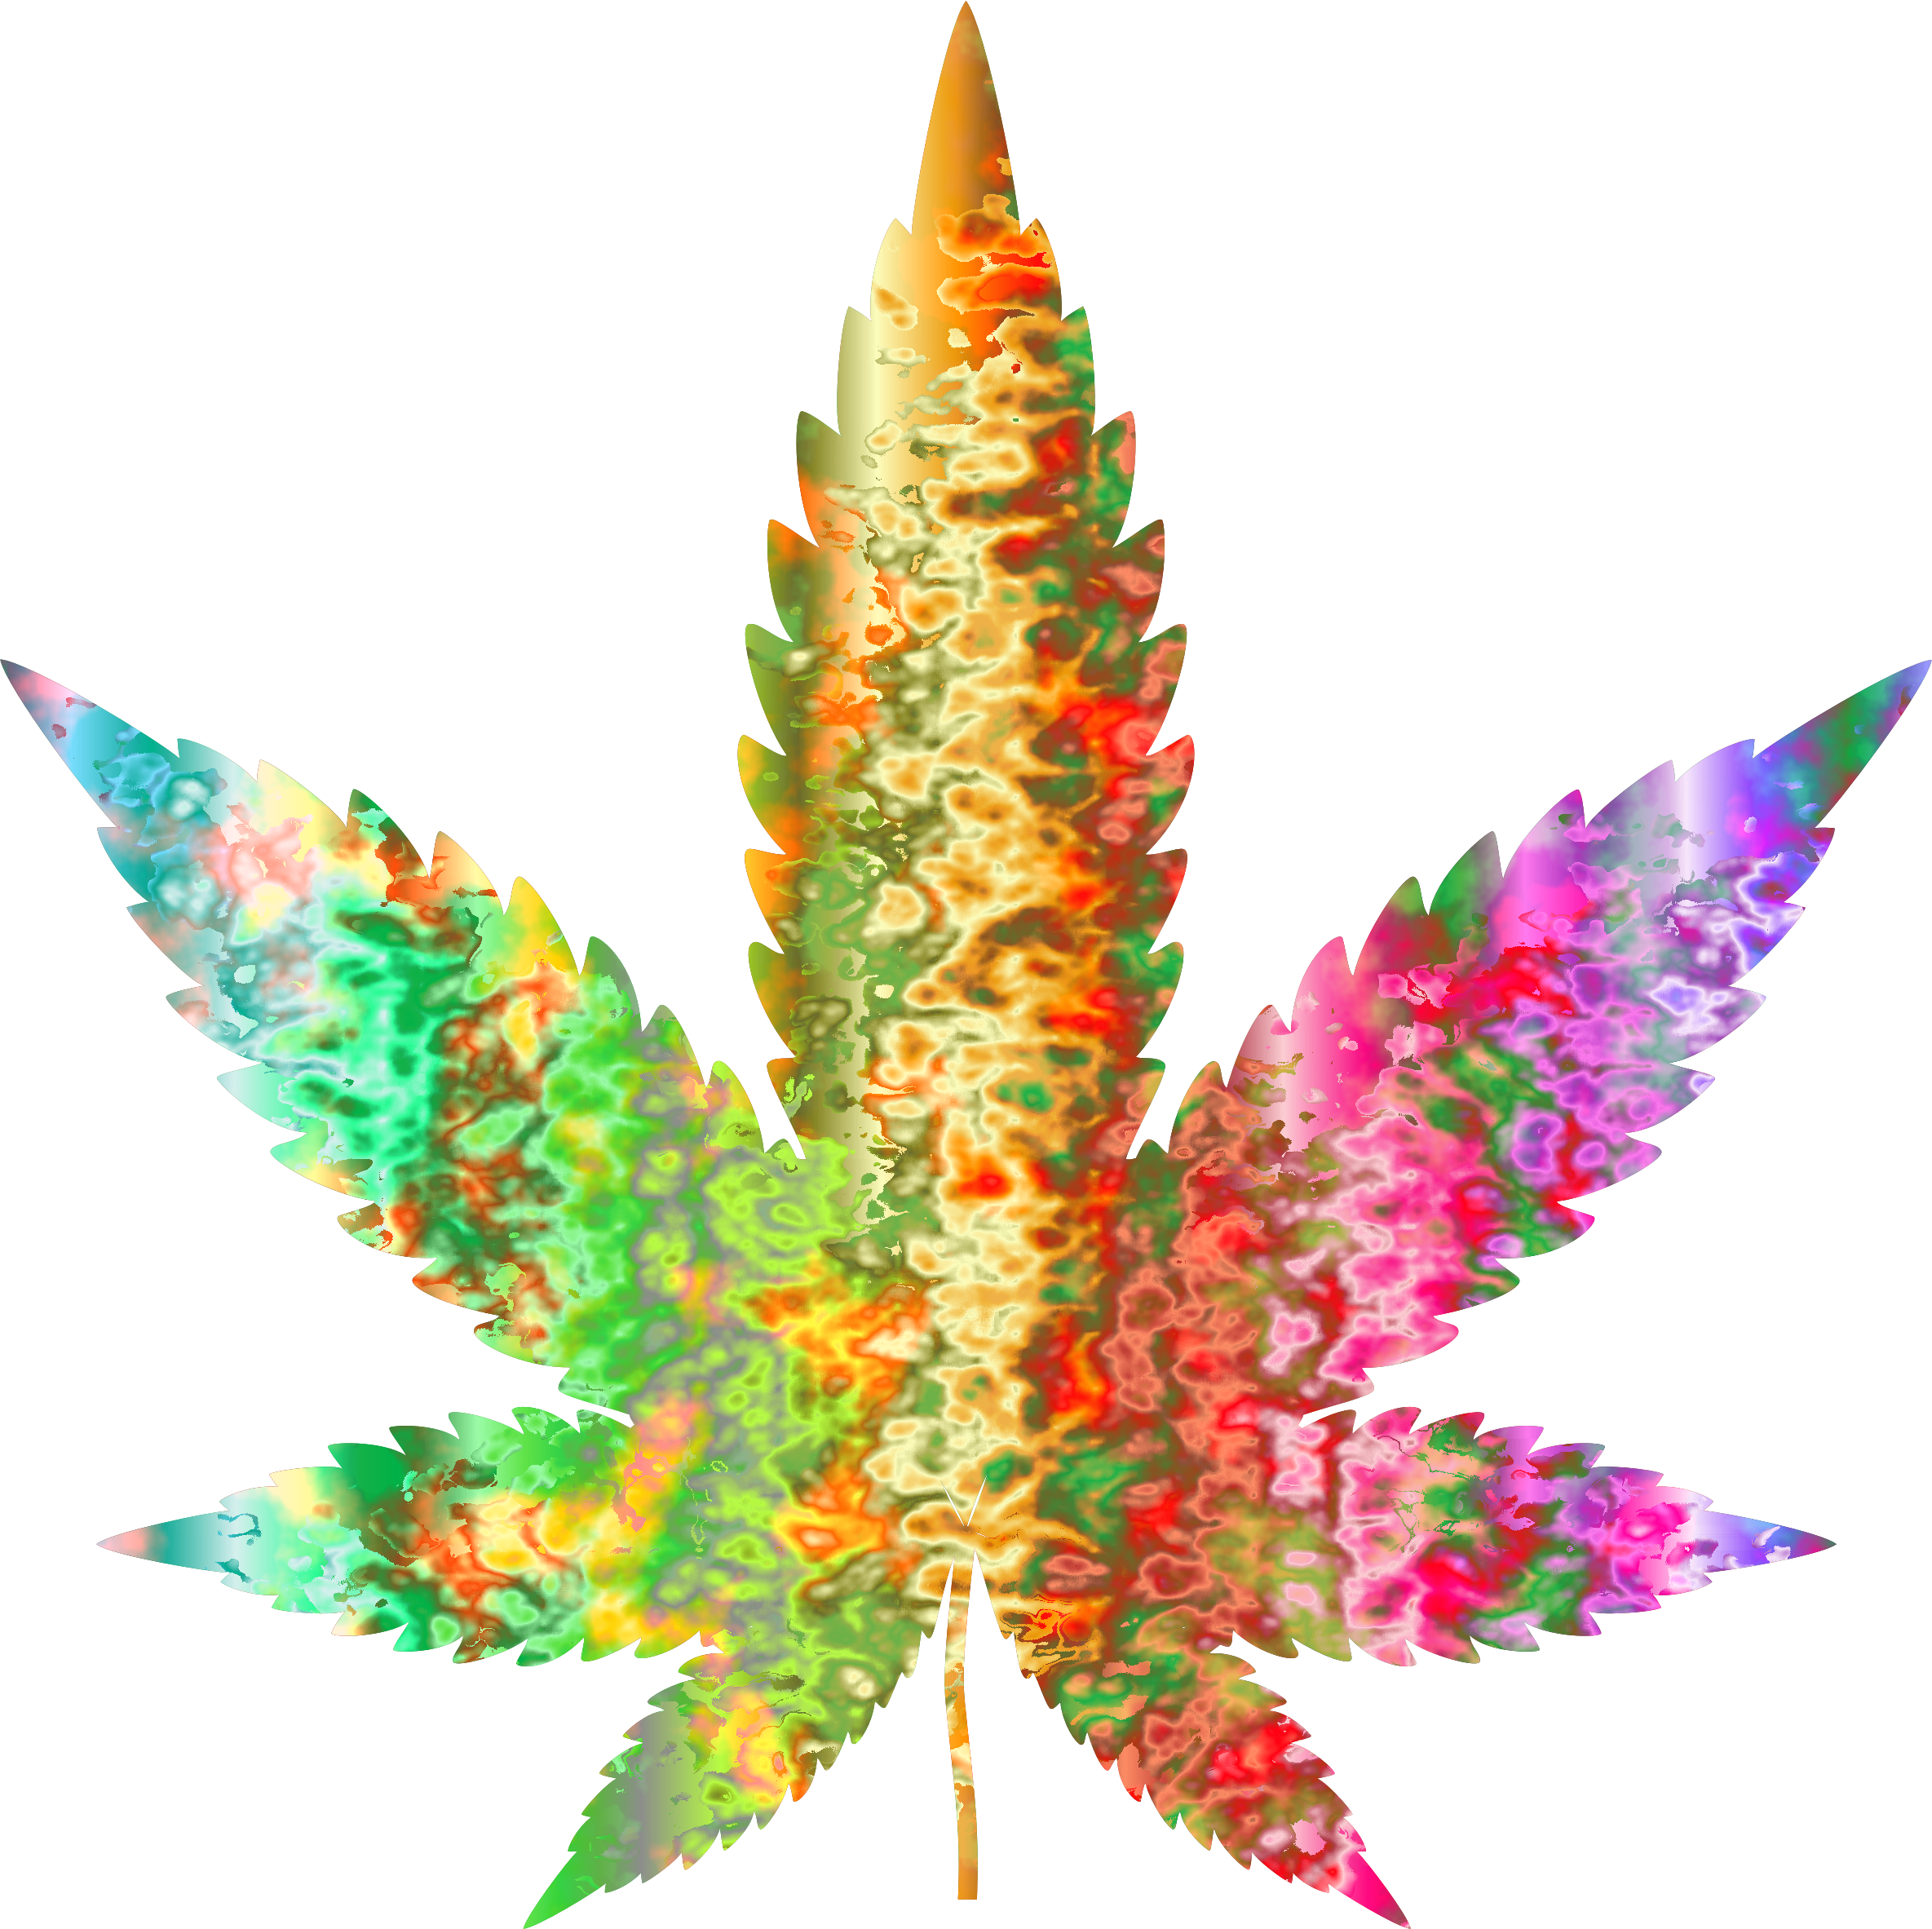 Psychedelic Marijuana Leaf by Arvin61r58